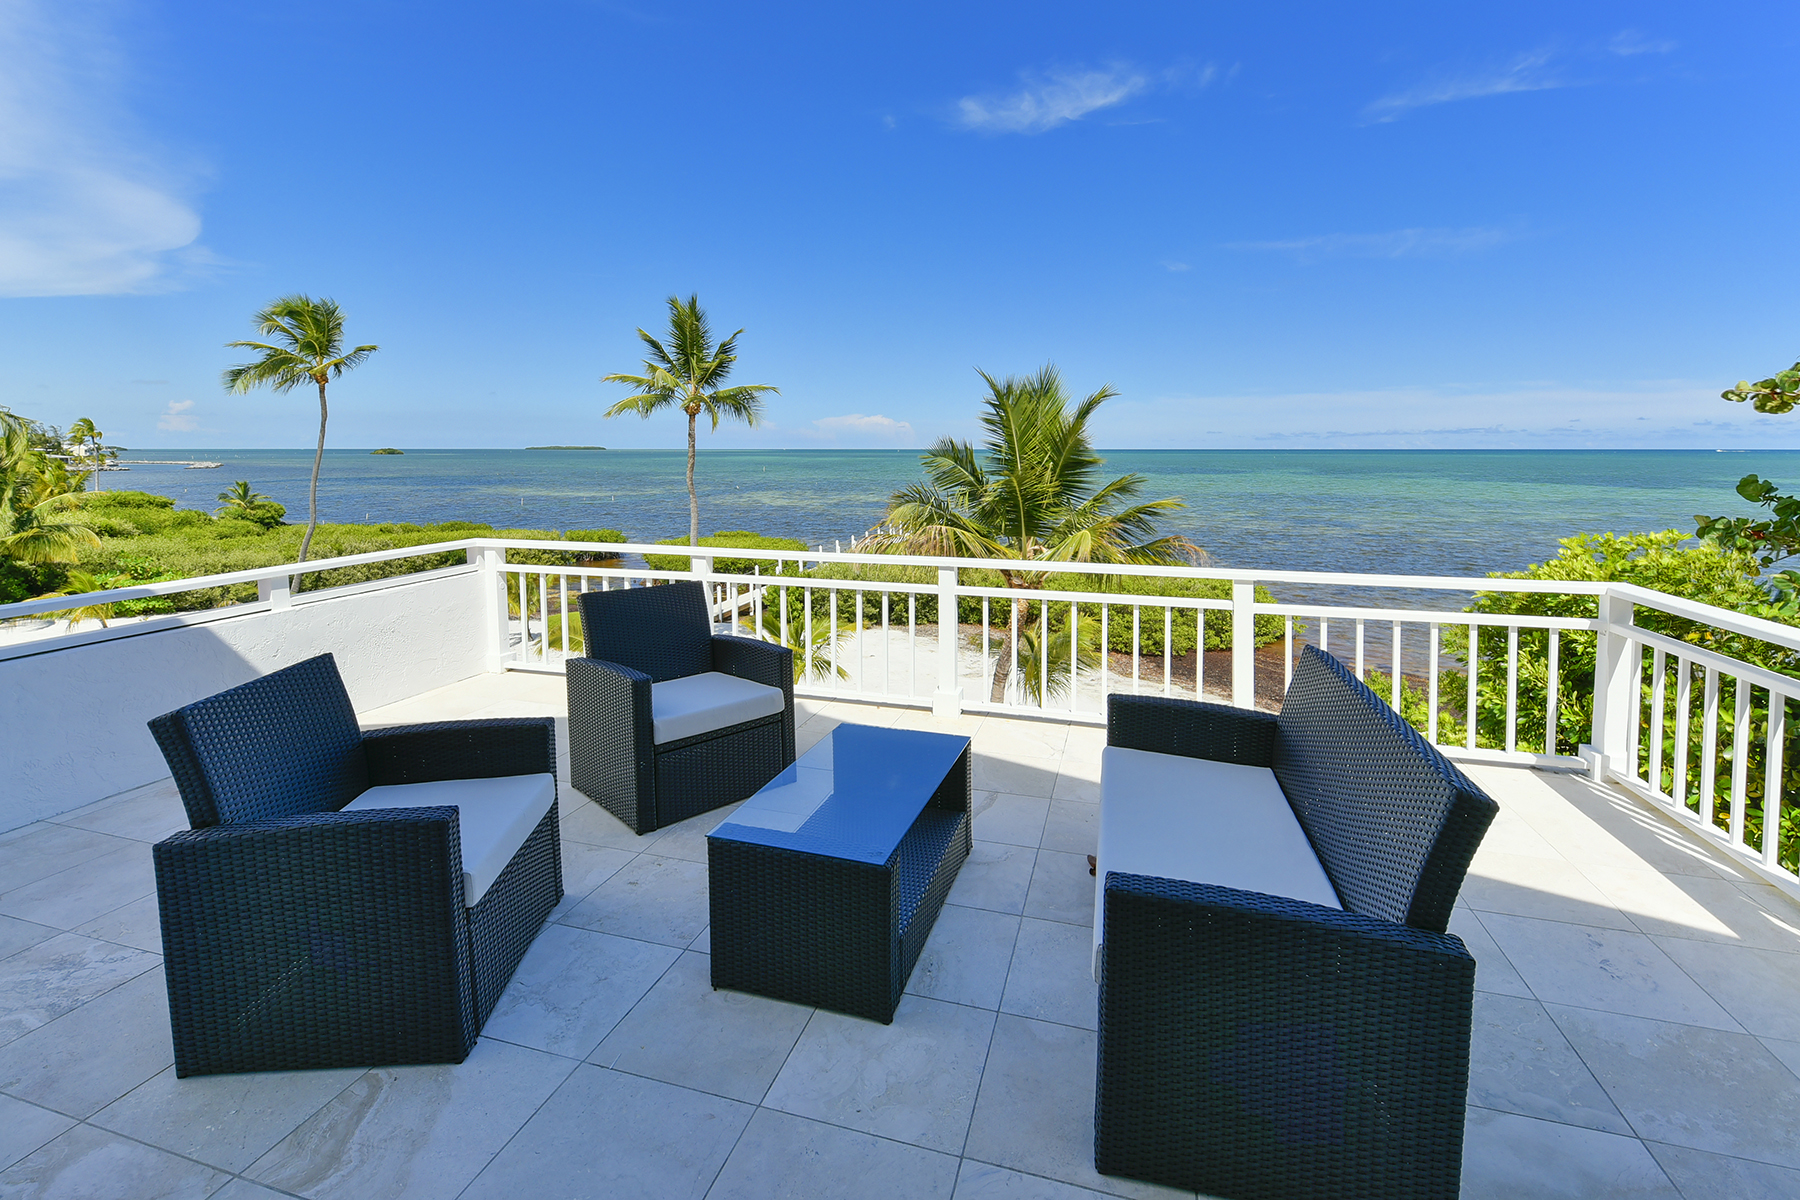 Single Family Home for Sale at Villa Thenardier 89625 Old Highway Islamorada, Florida 33070 United States